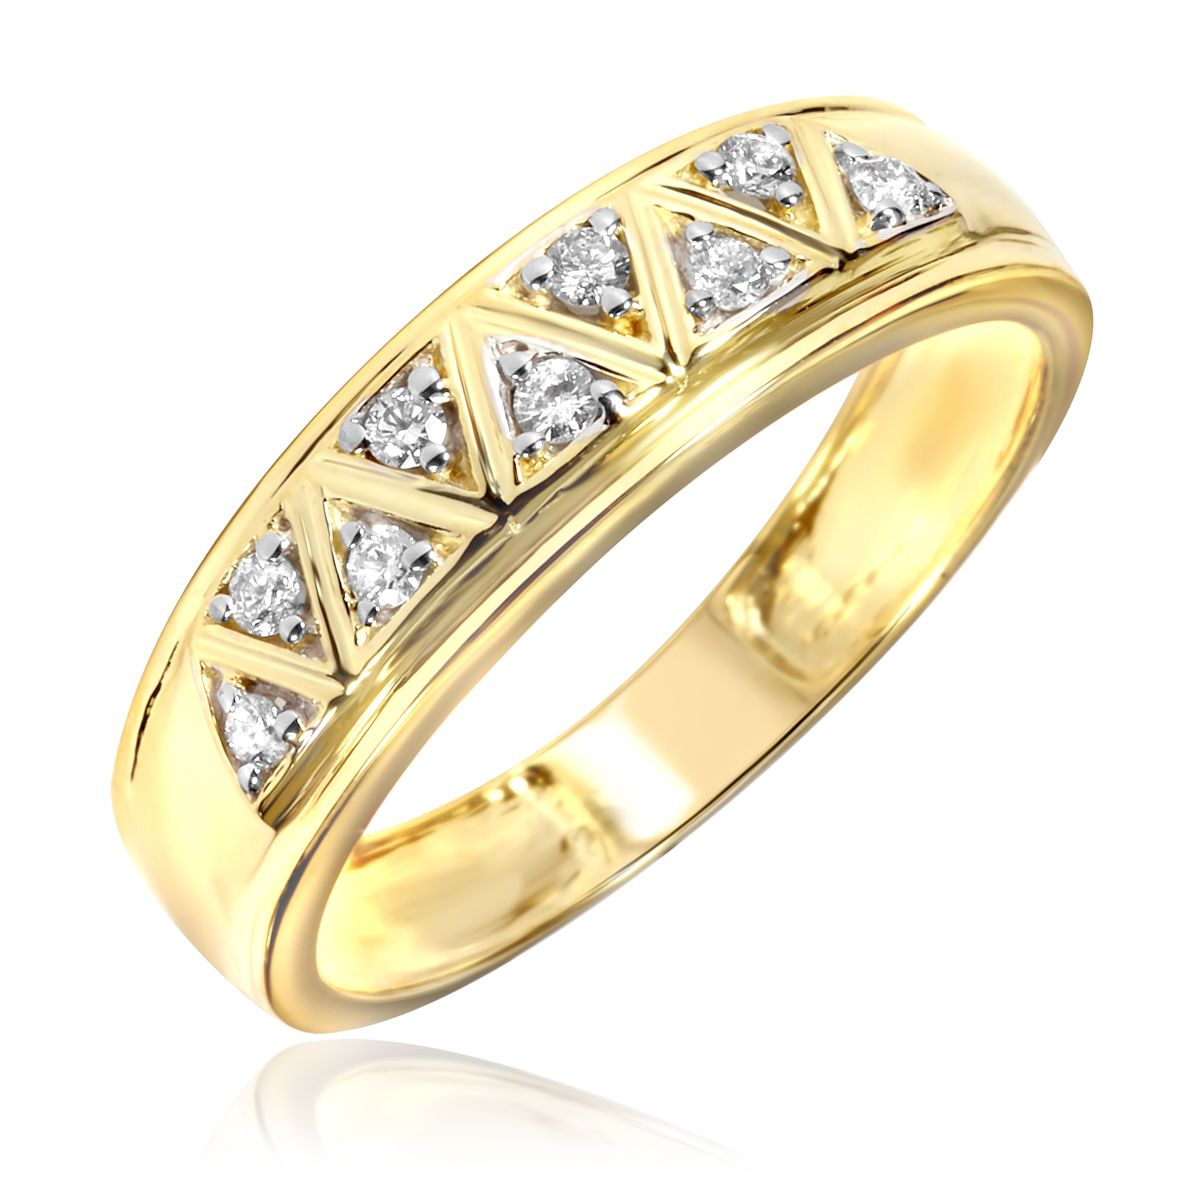 1 2 Carat Diamond Trio Wedding Ring Set 10K Yellow Gold Men RingsWedding